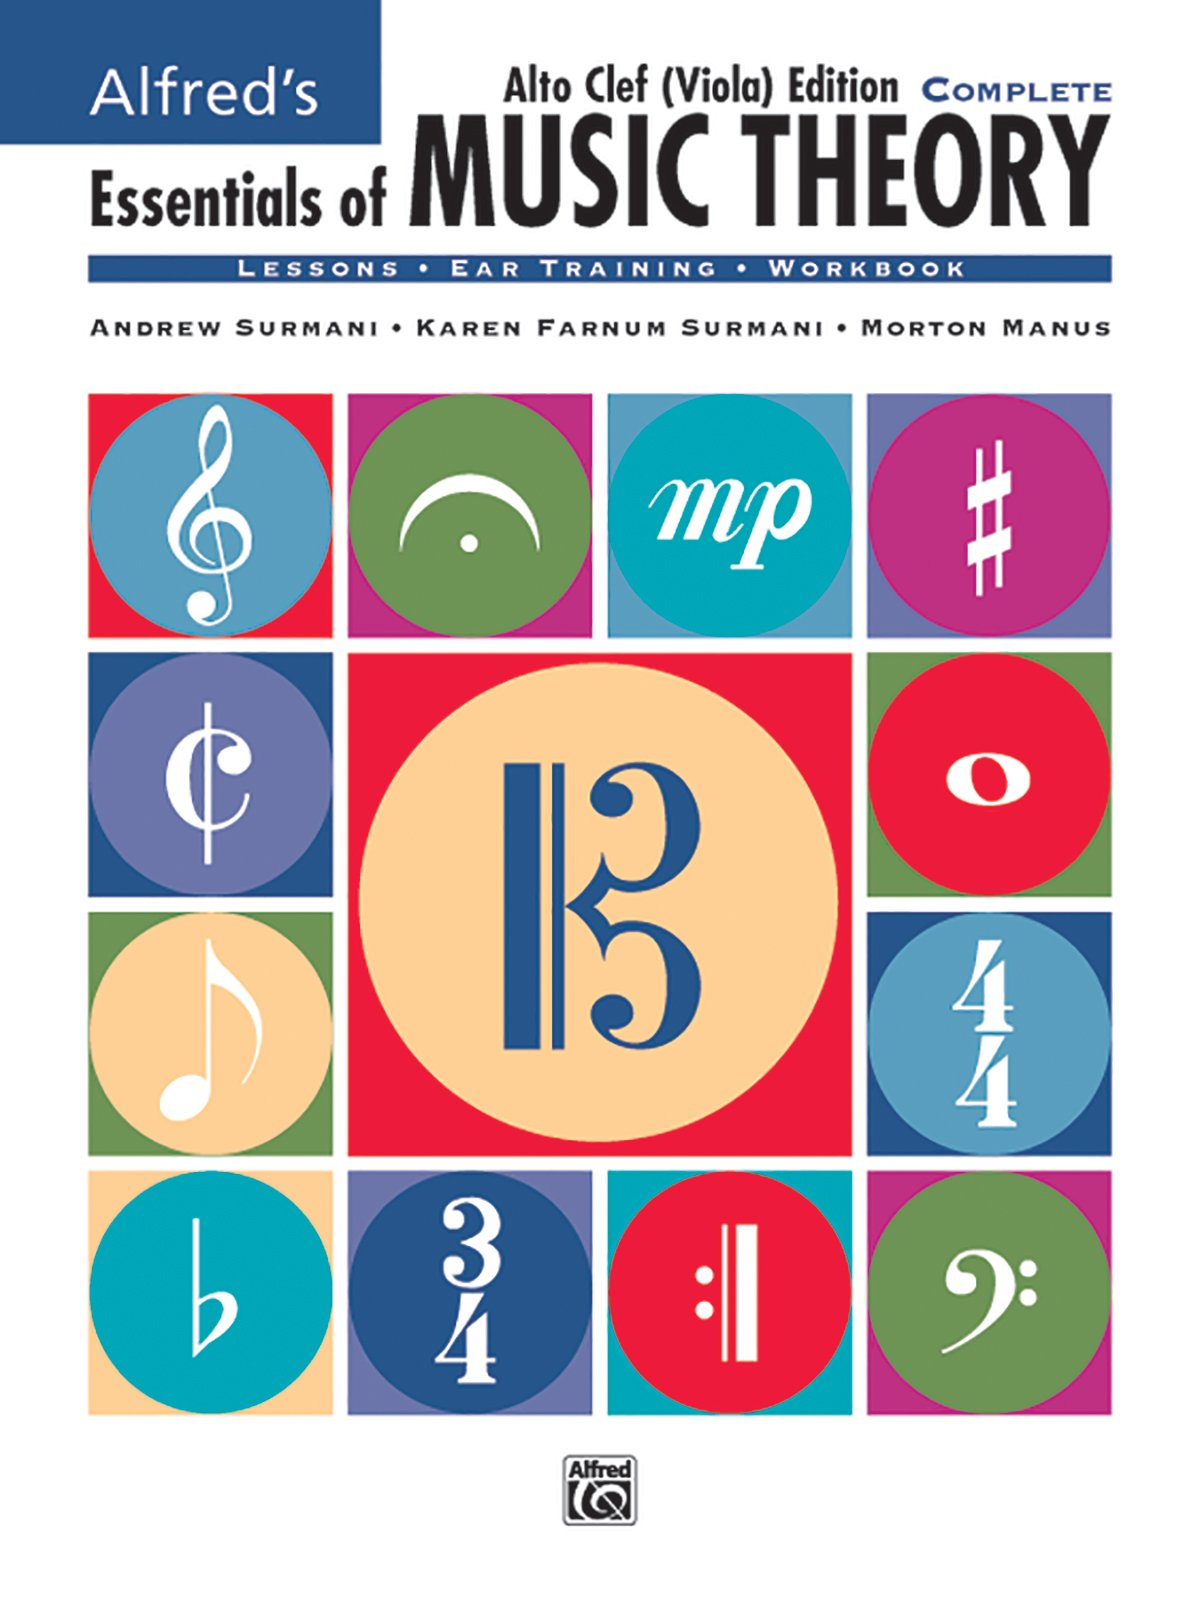 Workbooks music in theory and practice workbook : Amazon.com: Alfred's Essentials of Music Theory: Complete Book ...